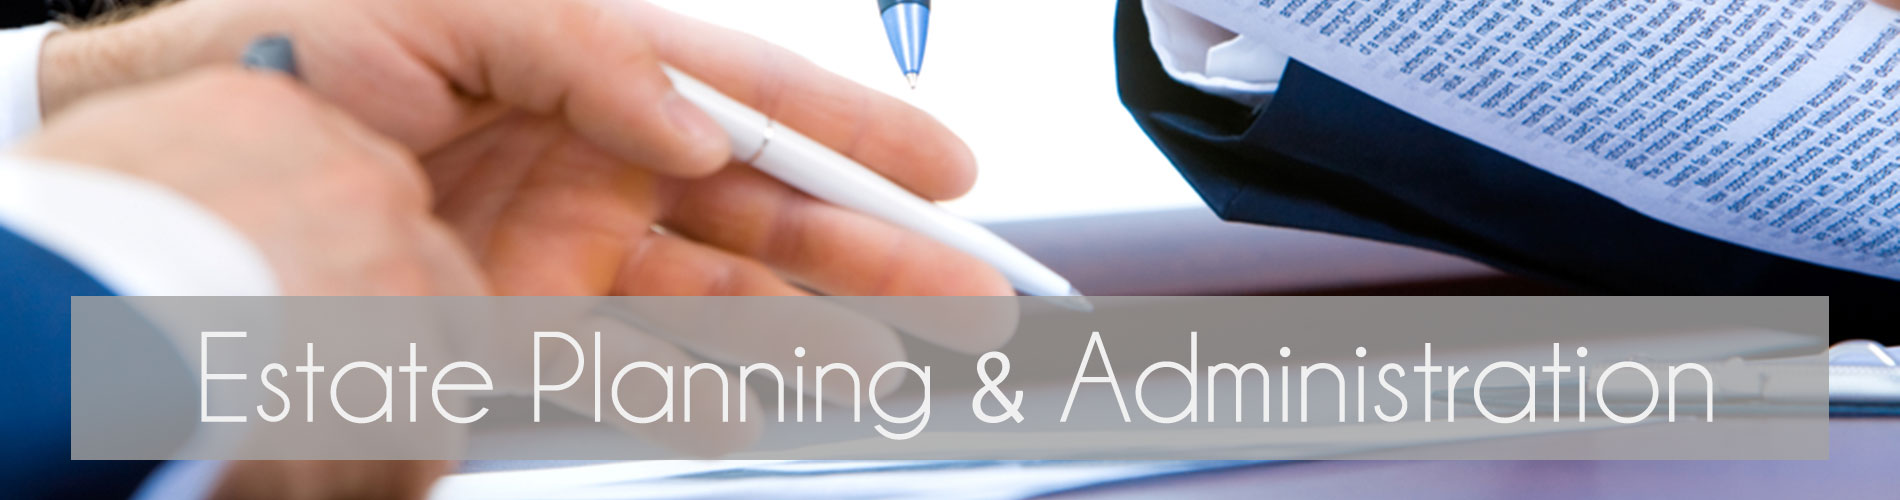 Estate Planning & Administration